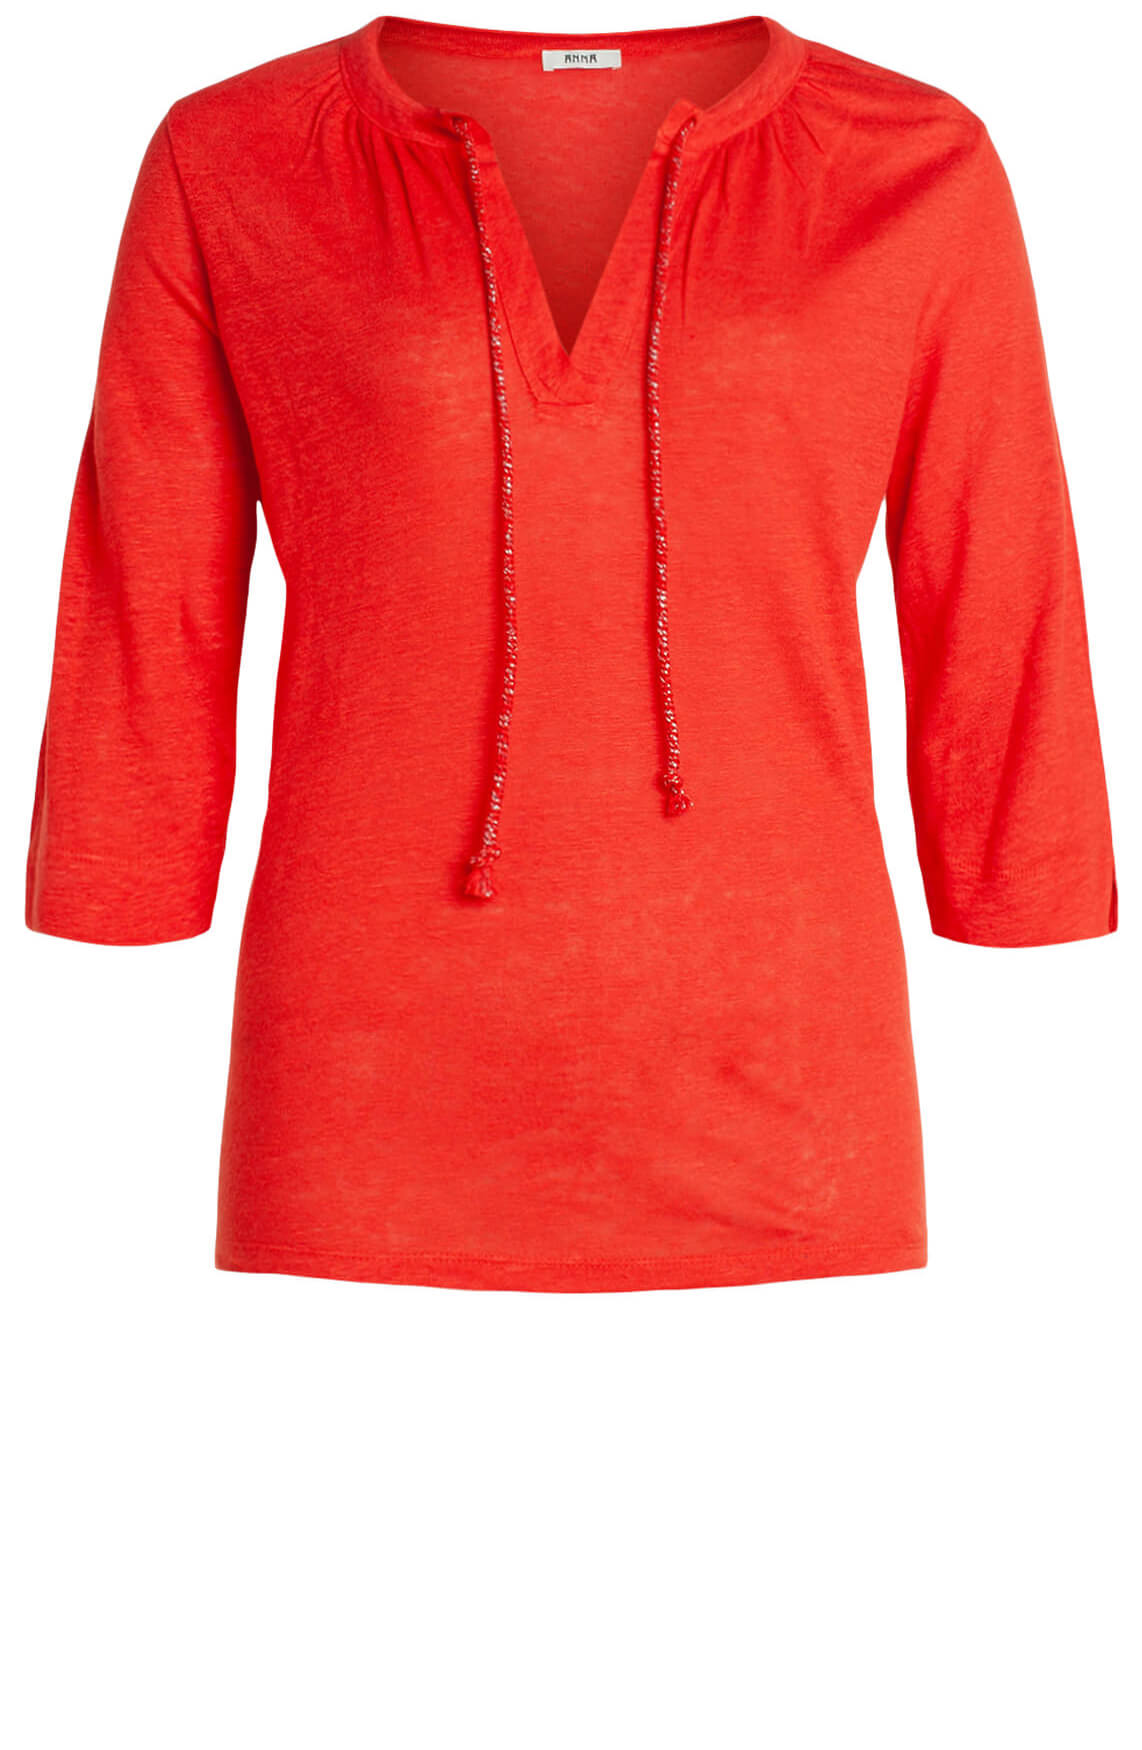 Anna Dames Blouse met strikdetail Rood